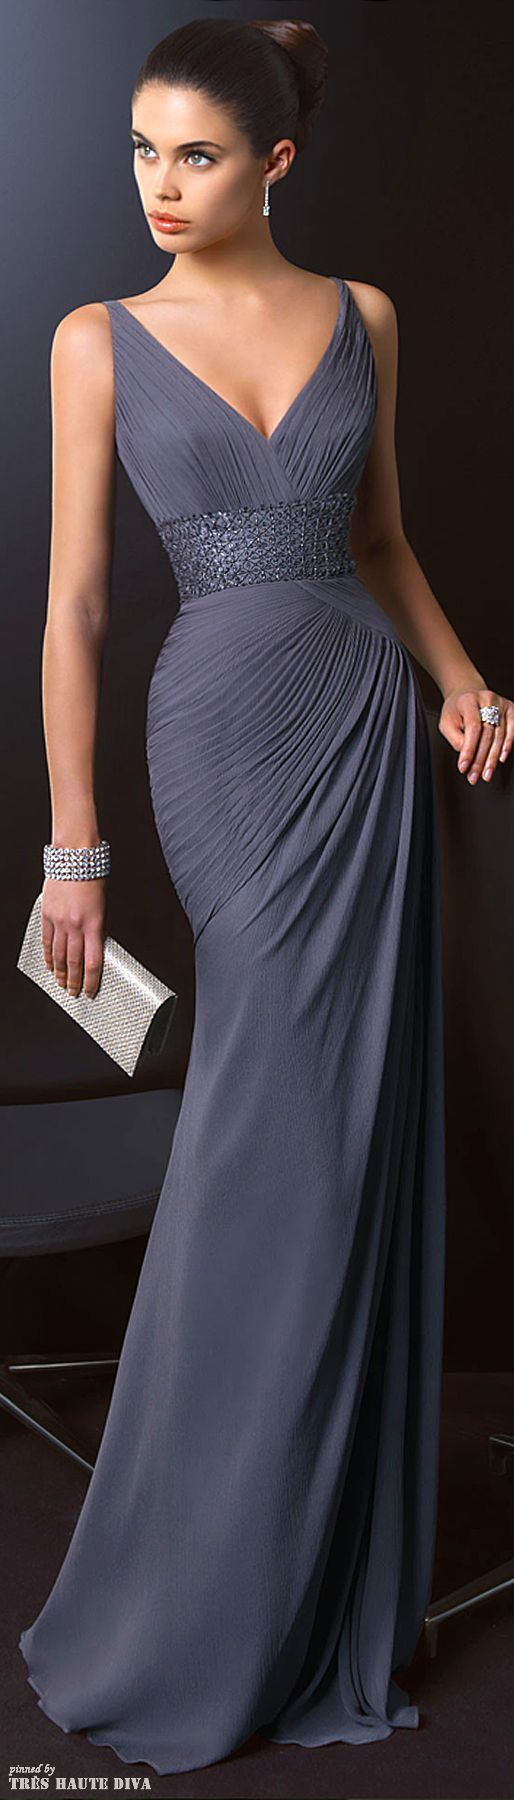 How To Look Smashing In An Evening Gown – Some Tips | Elegant ...